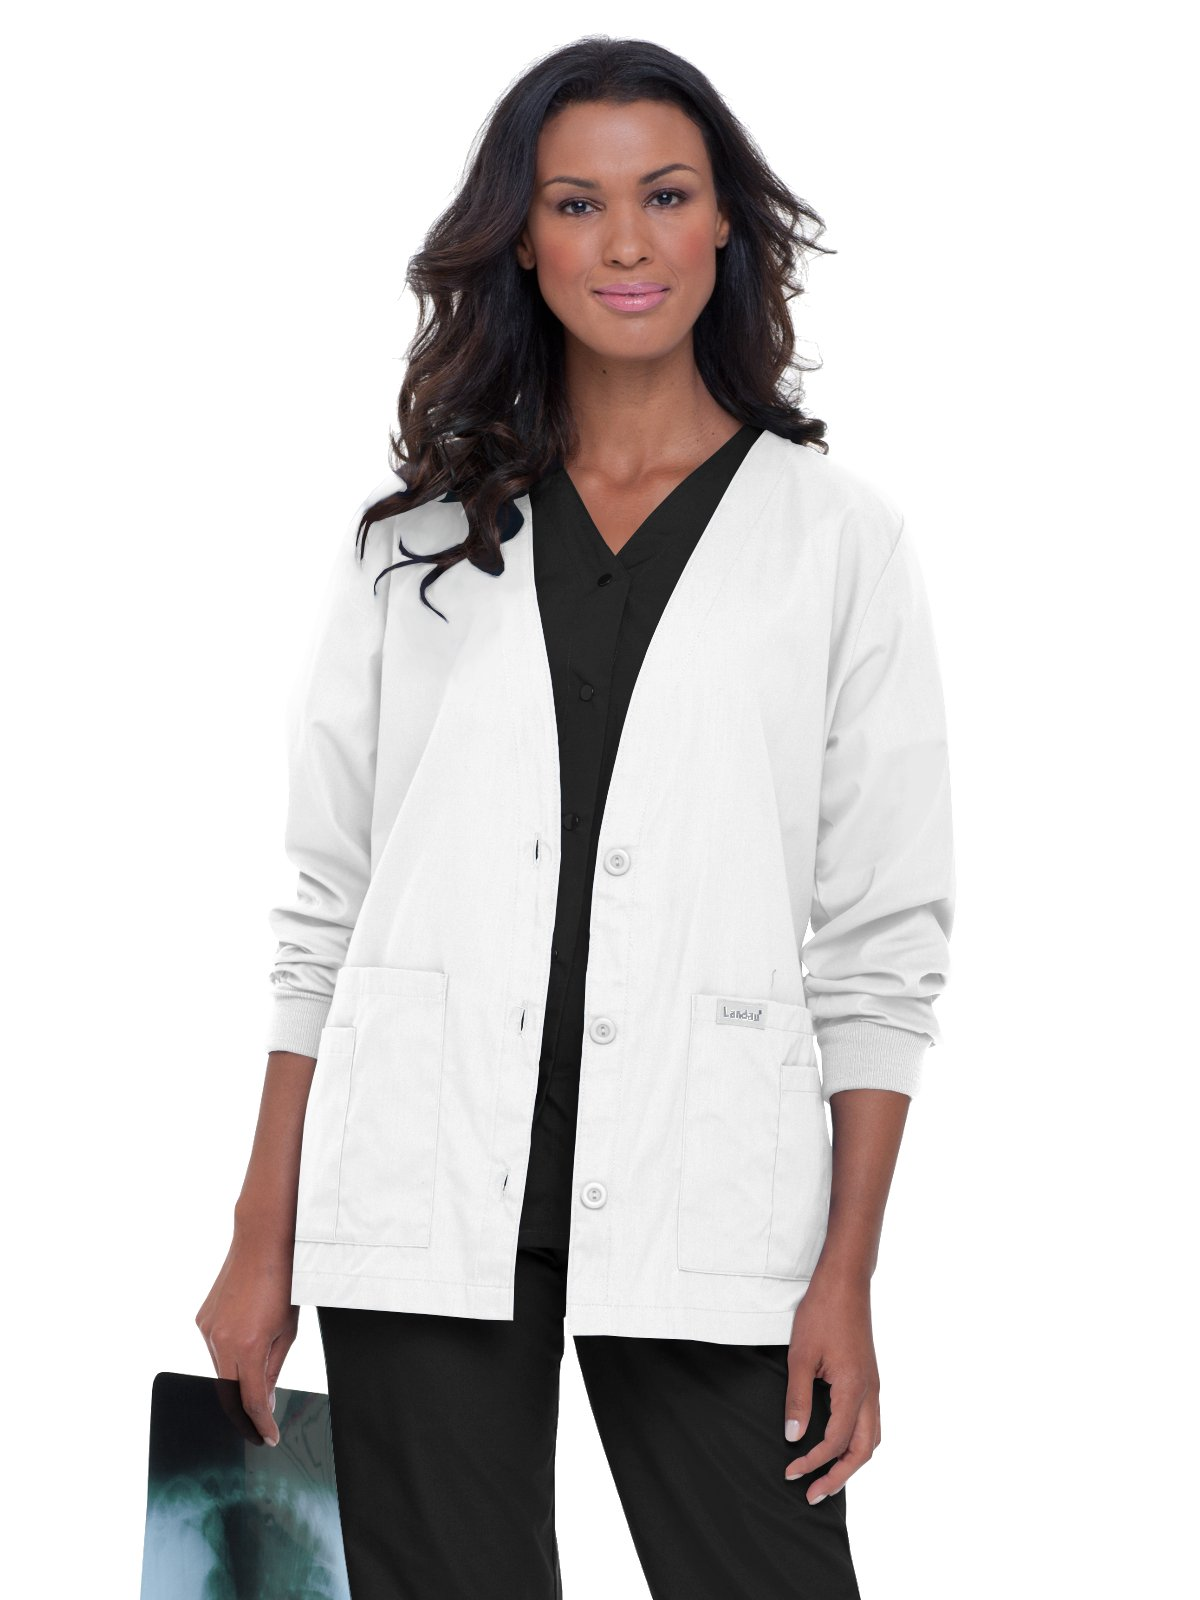 Landau Essentials Women's Cardigan Warm-up Scrub Jacket White 2XL